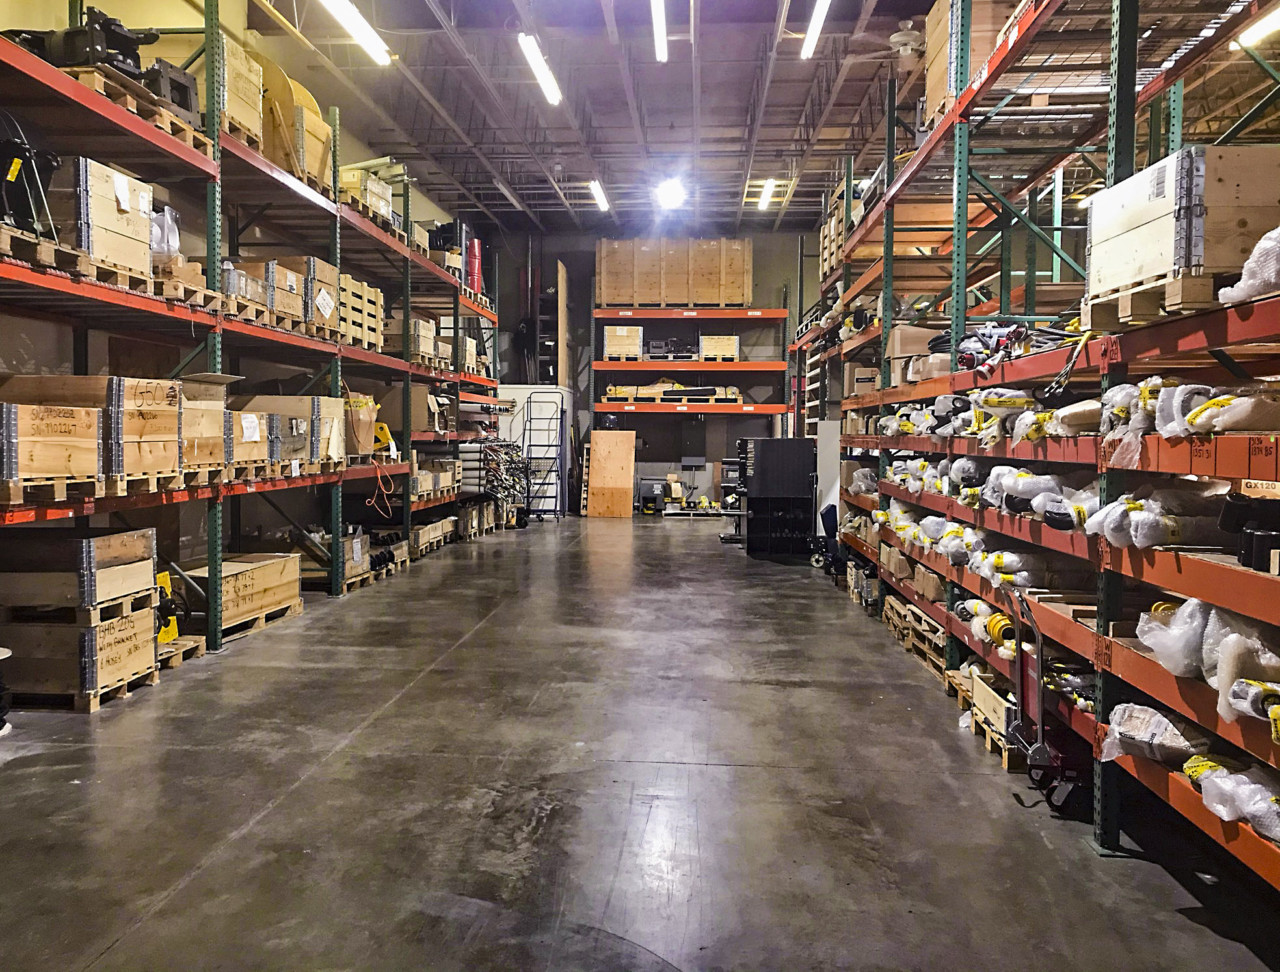 Brokk Upgrades Parts Warehouse to Ensure Fast Service